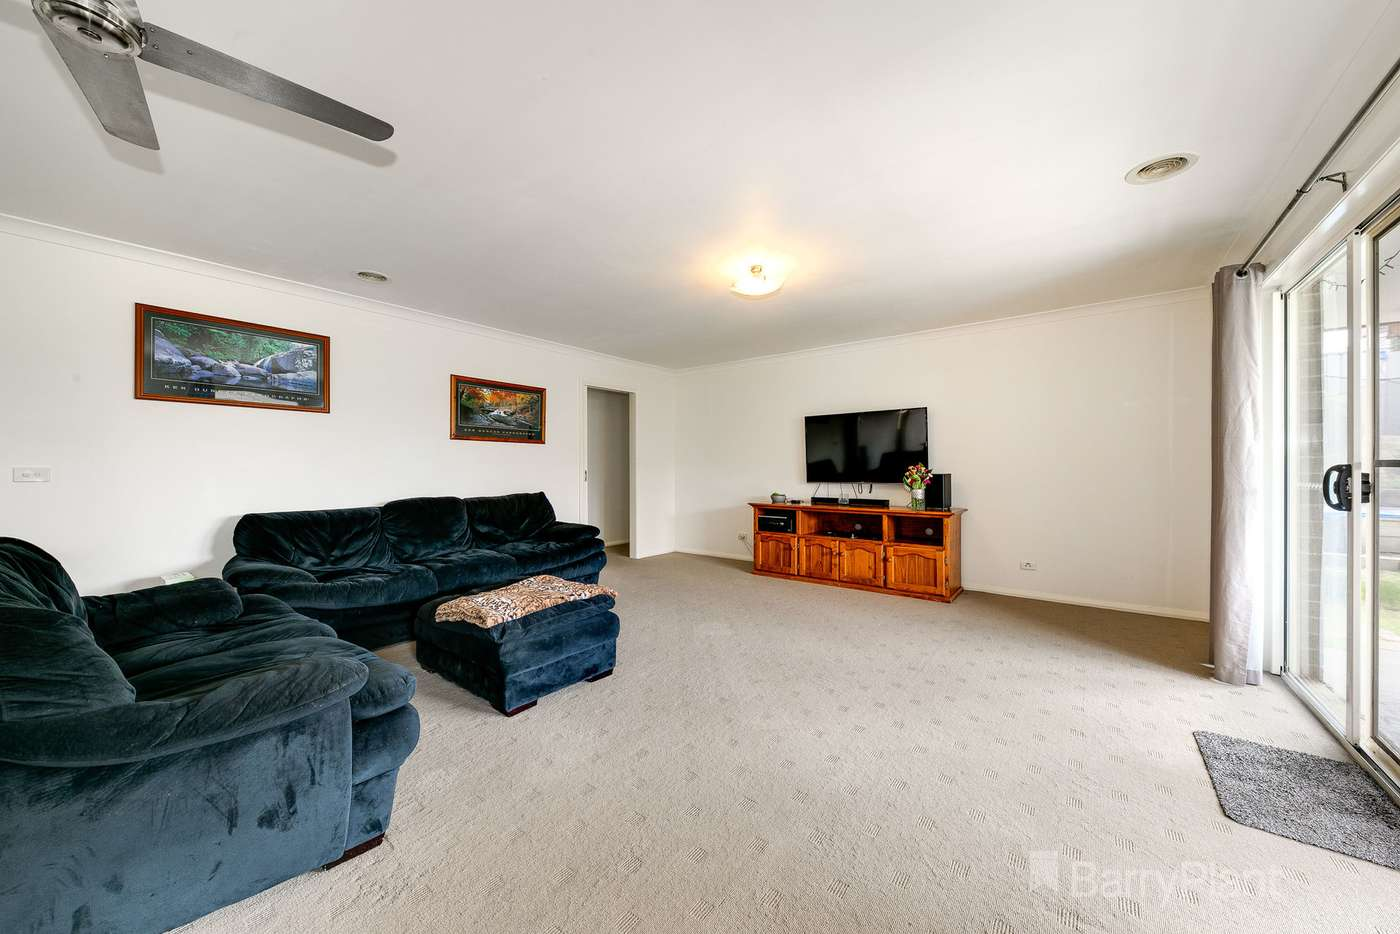 Sixth view of Homely house listing, 30 Victoria Place, Pakenham VIC 3810